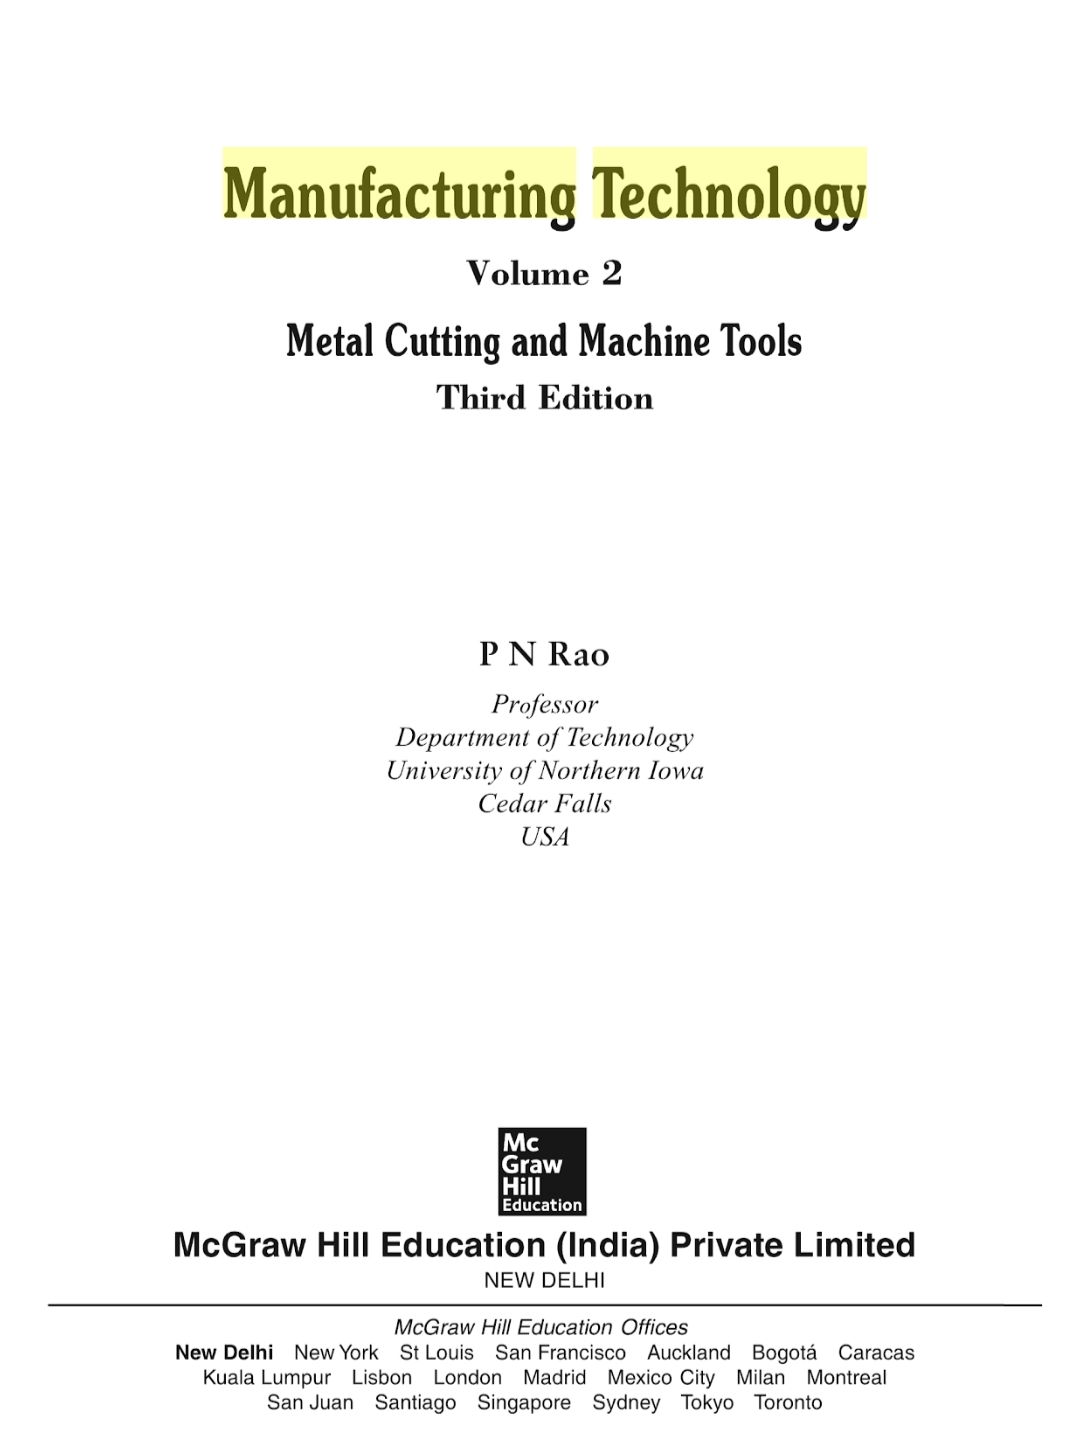 Manufacturing Technology Volume 2 Pdf